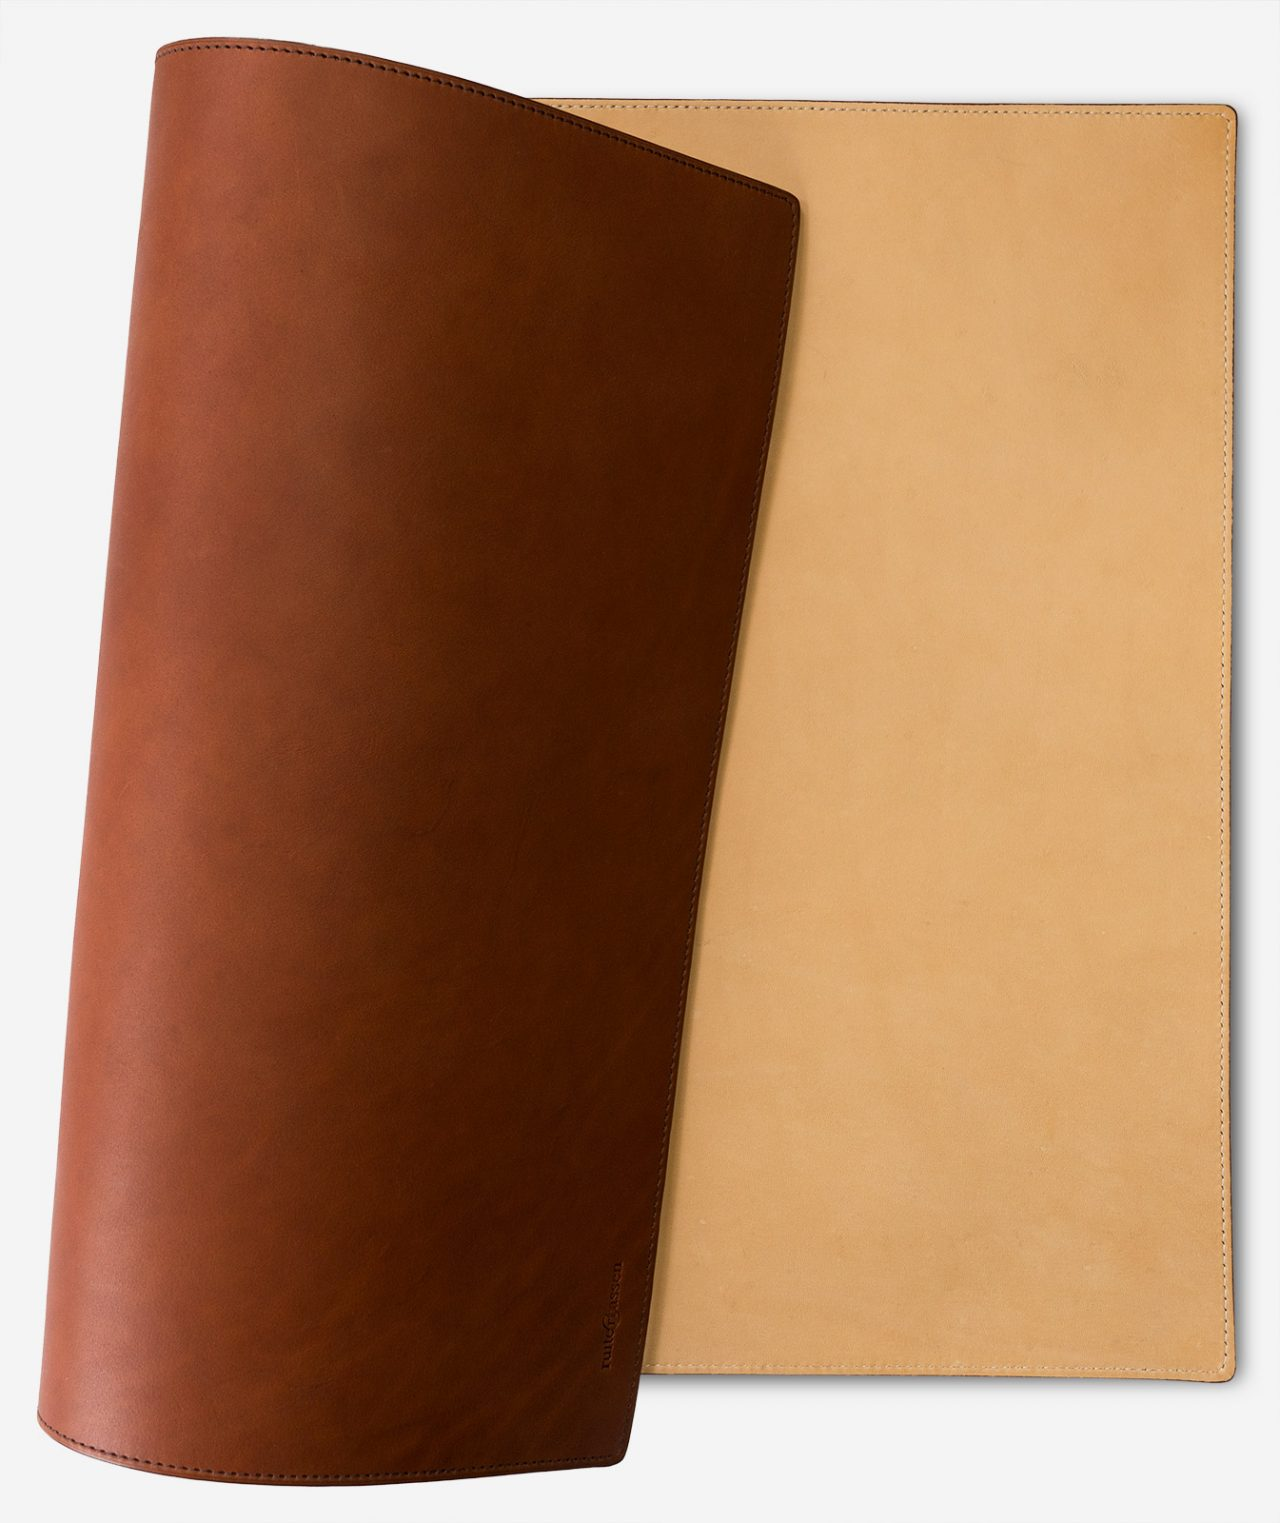 Reversible writing desk mat in leather.